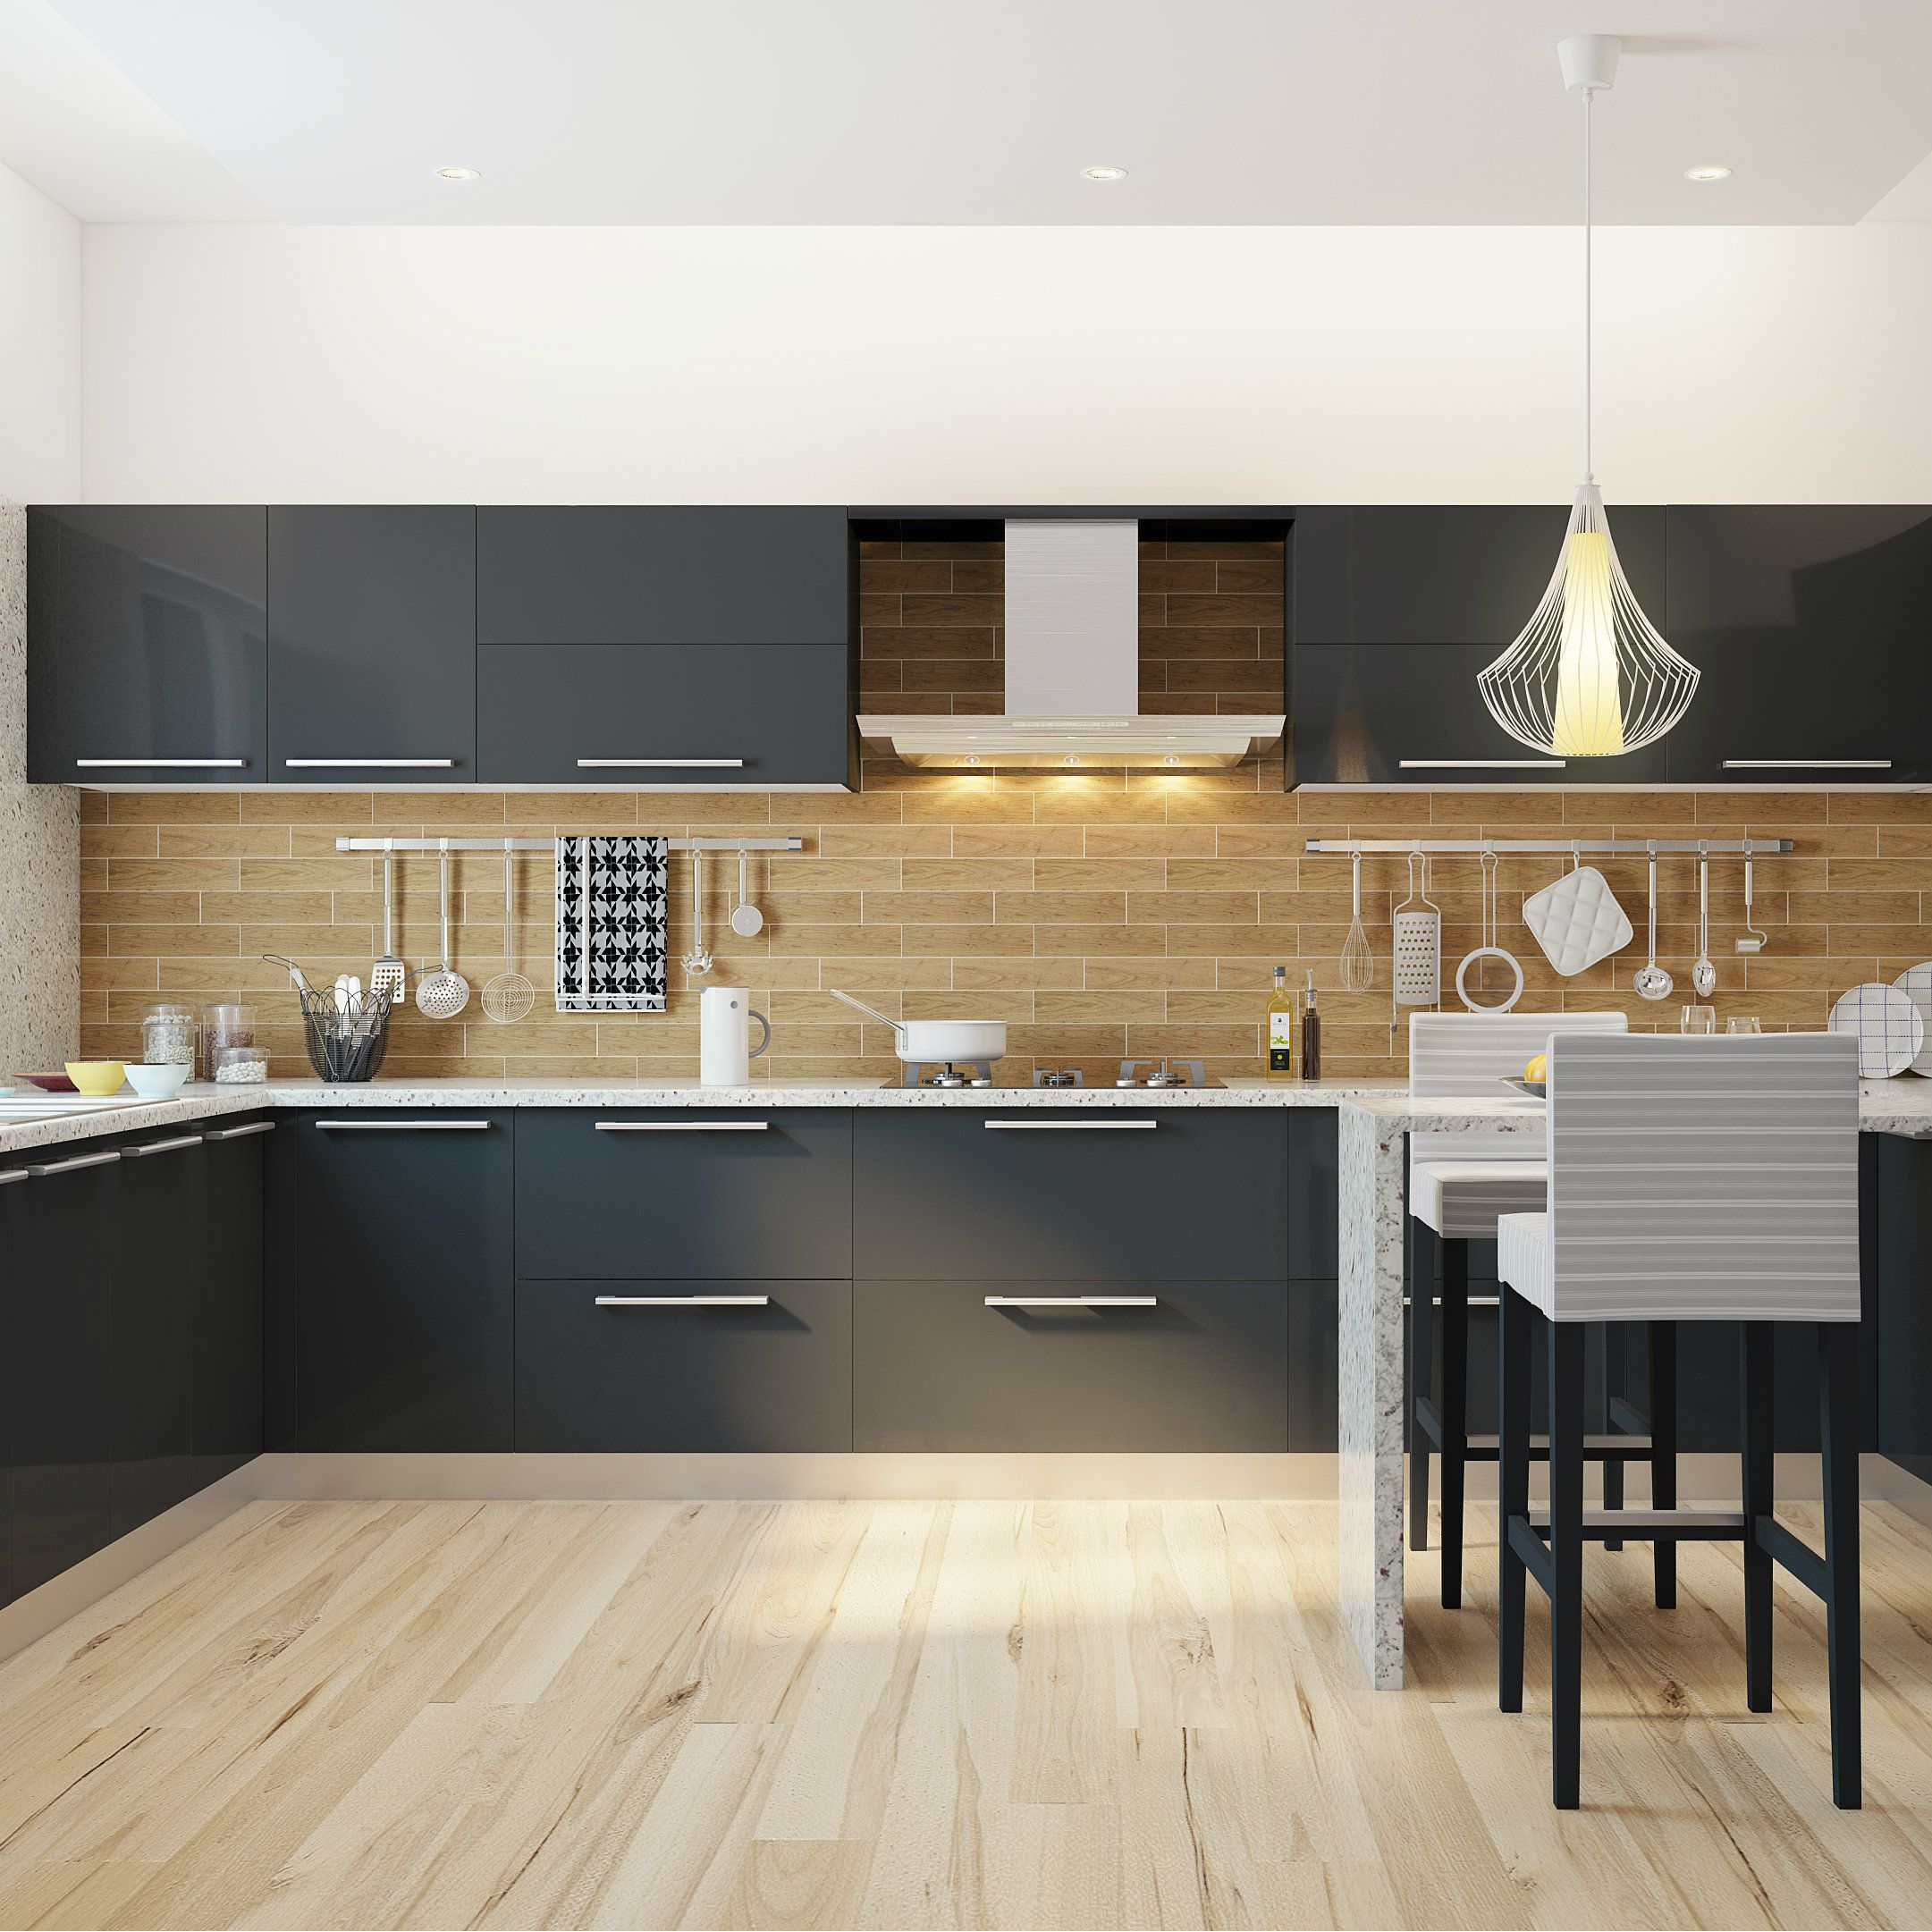 Great Sprawling Modular Kitchen With A Breakfast Counter. Perfect For Modern  Indian Homes. Part 31